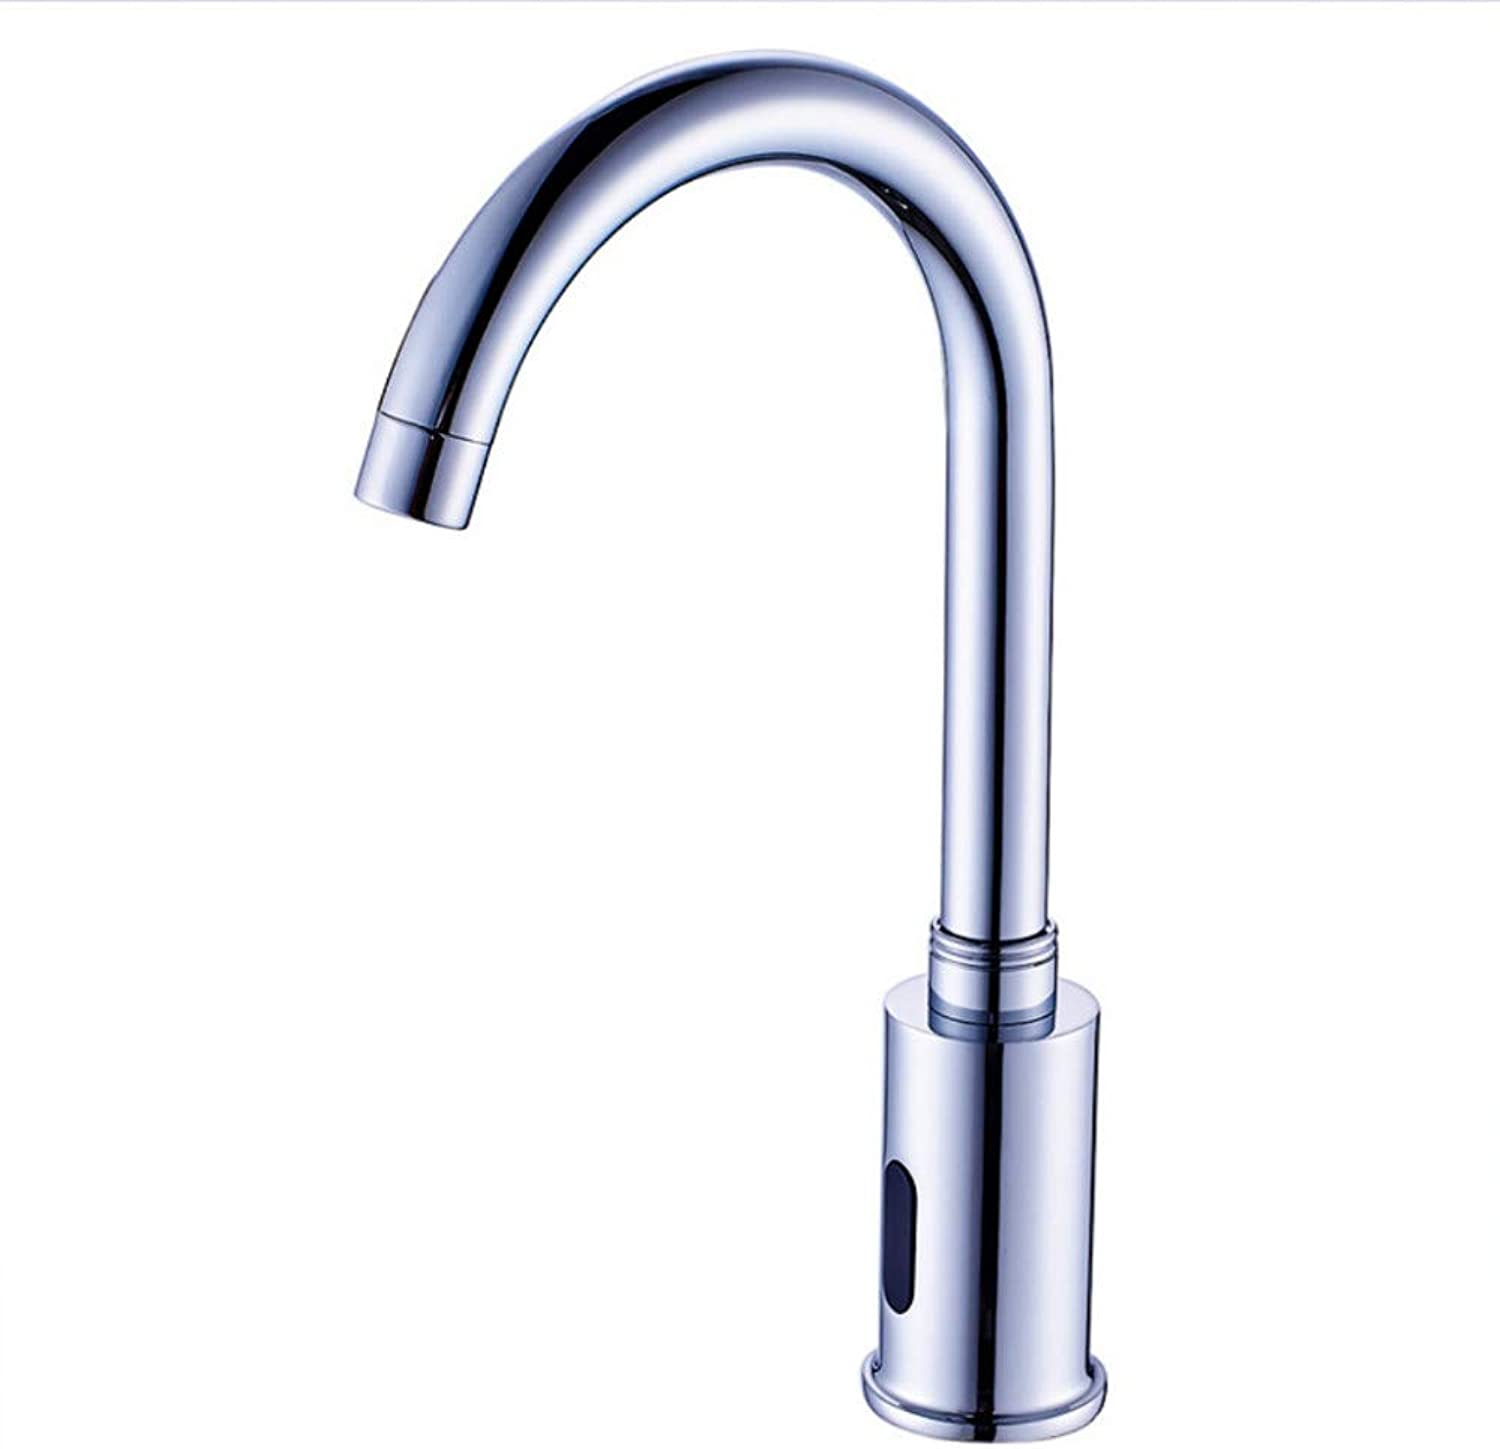 Faucet high-end Induction Faucet Chrome-Plated Sensor Faucet